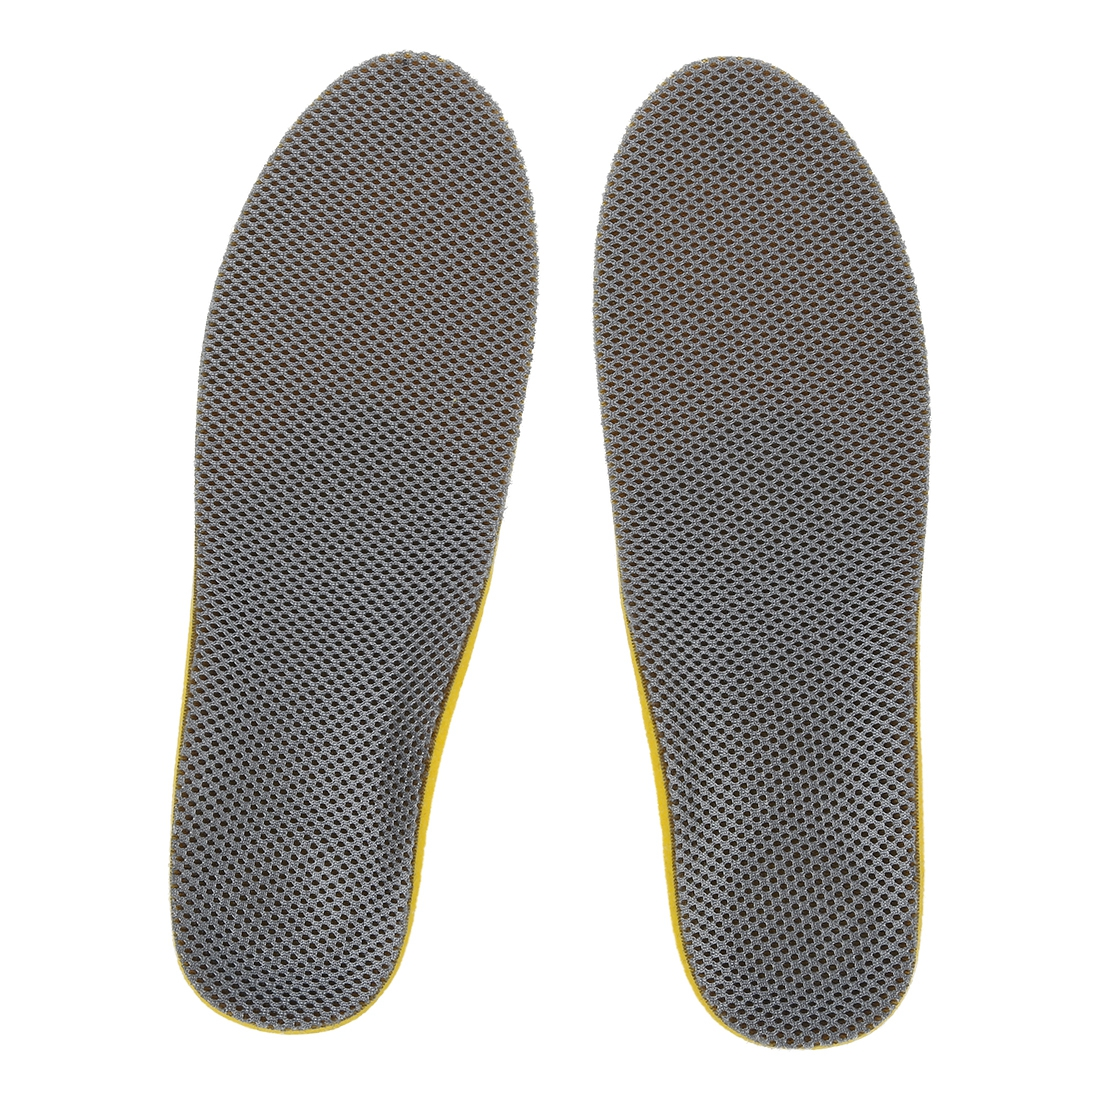 ASDS Comfortable Orthotic Shoes Insoles Inserts High Arch Support Pad L shoes pads memory foam support orthotic insoles arch